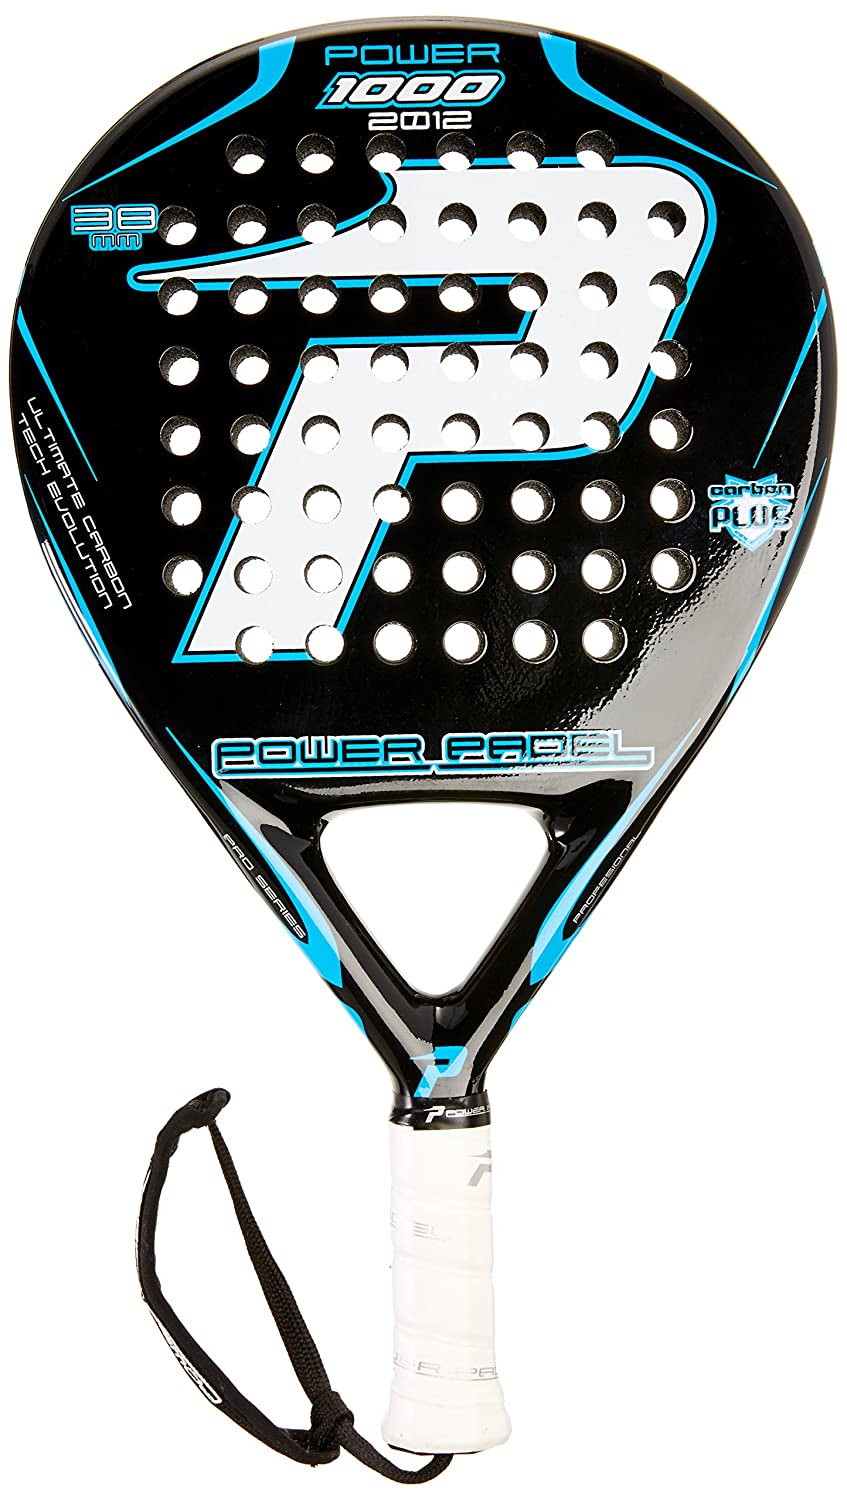 POWER PADEL 1000 2012 - Pala, Color Negro/Blanco, 38 mm: Amazon.es: Deportes y aire libre